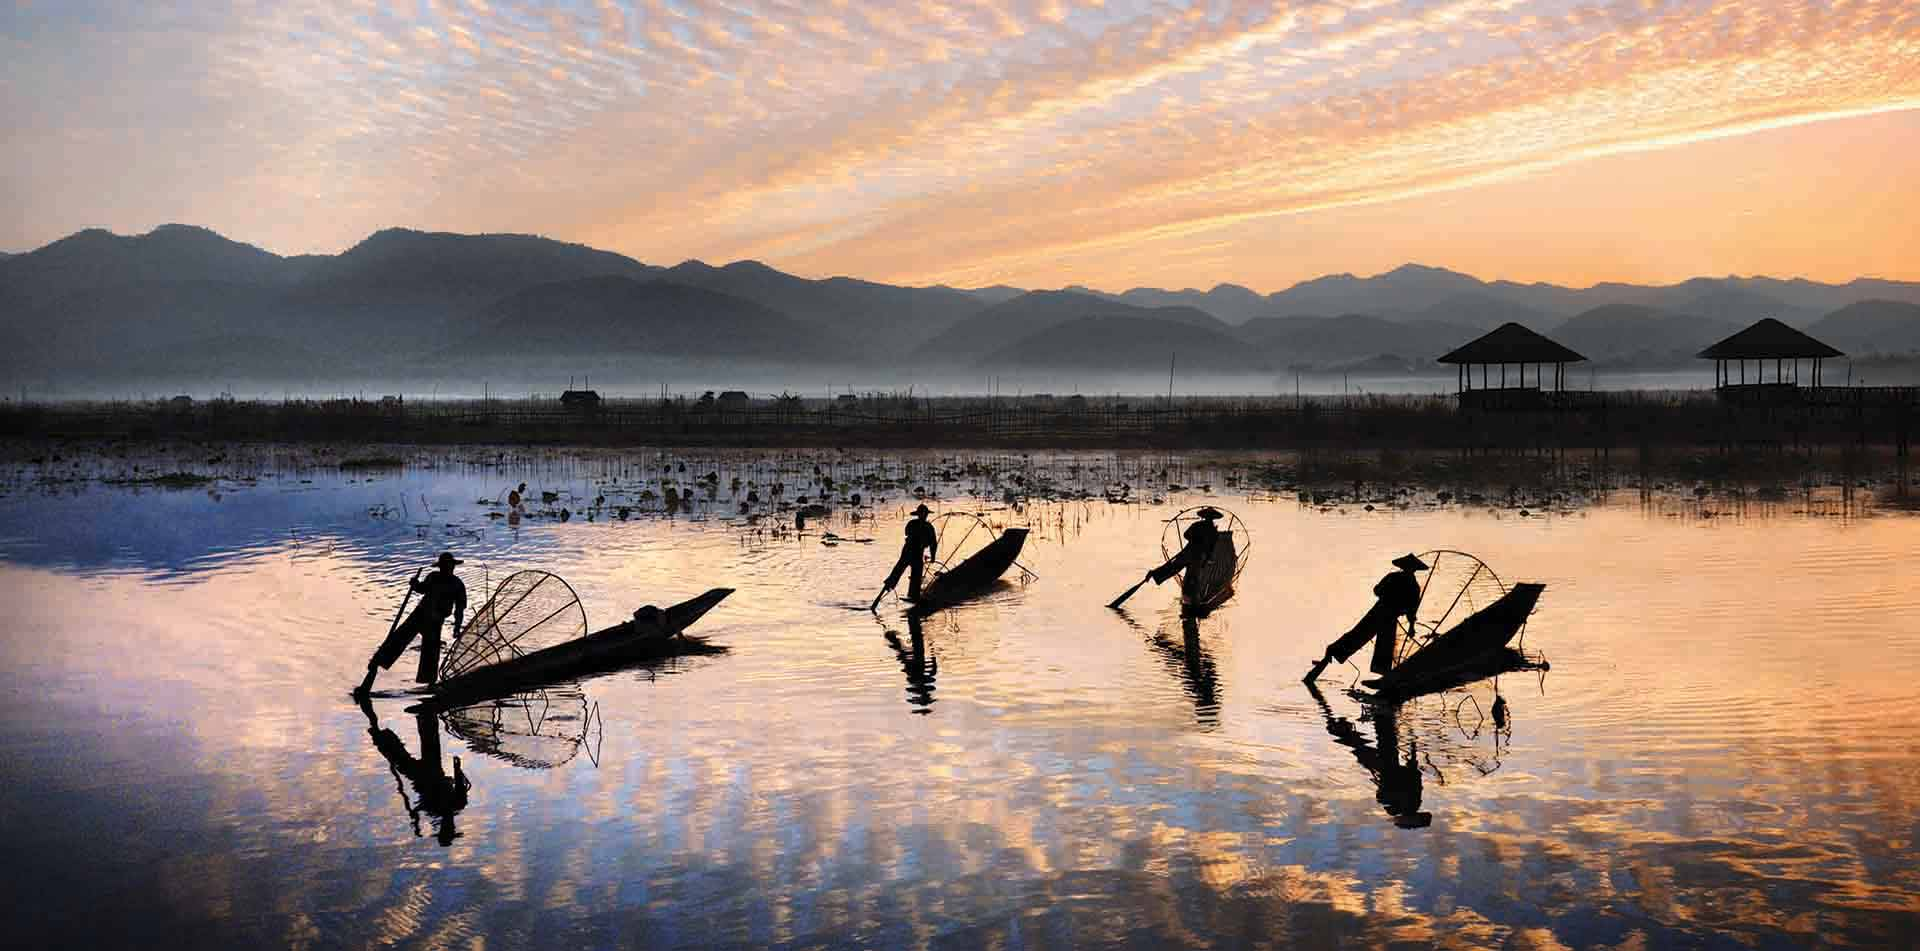 Asia Myanmar traditional Burmese fishermen on boats tranquil lake at sunset scenic mountains - luxury vacation destinations